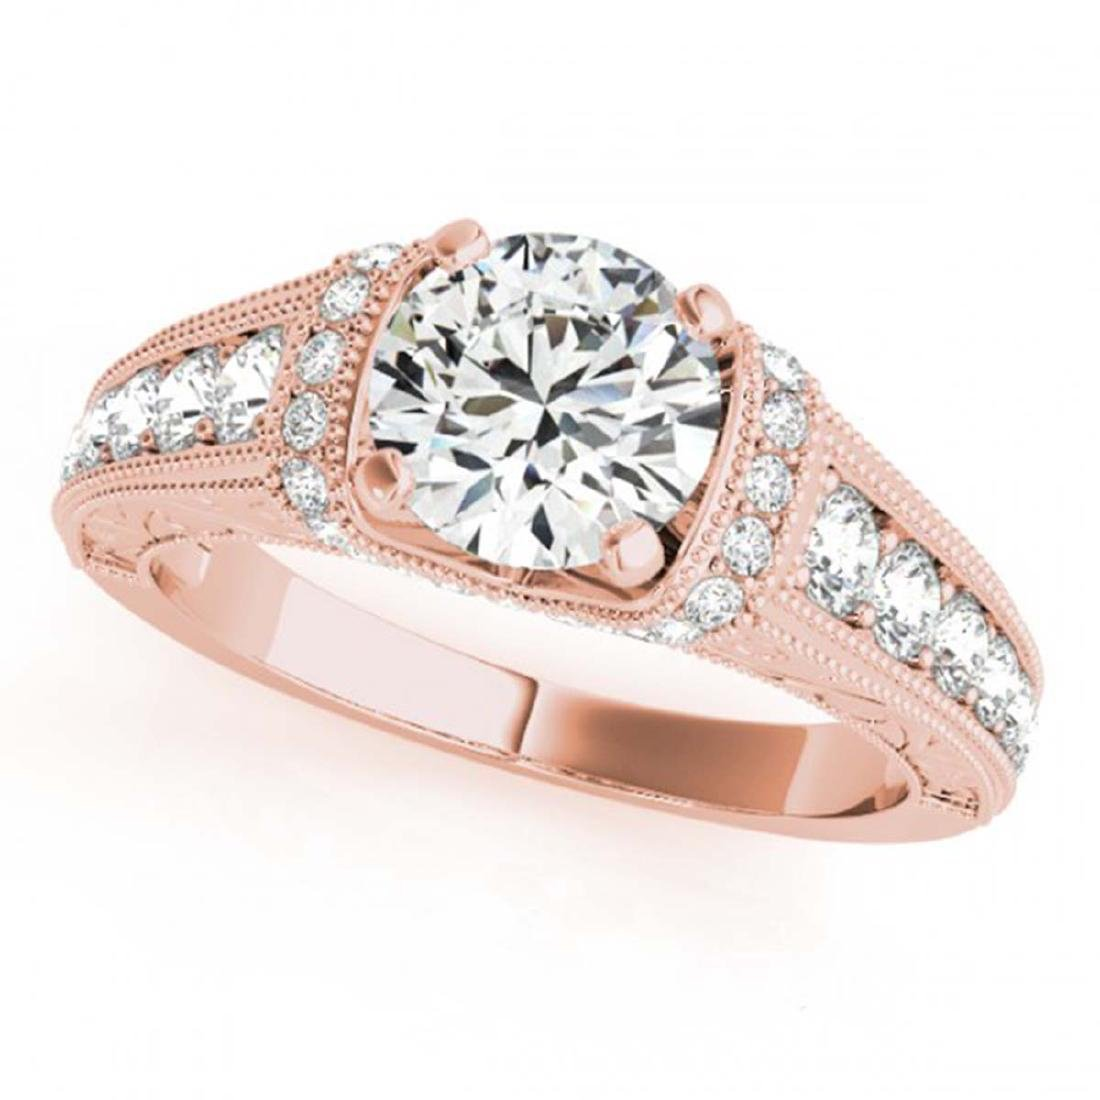 1.75 ctw VS/SI Diamond Ring 14K Rose Gold - REF-374W6H